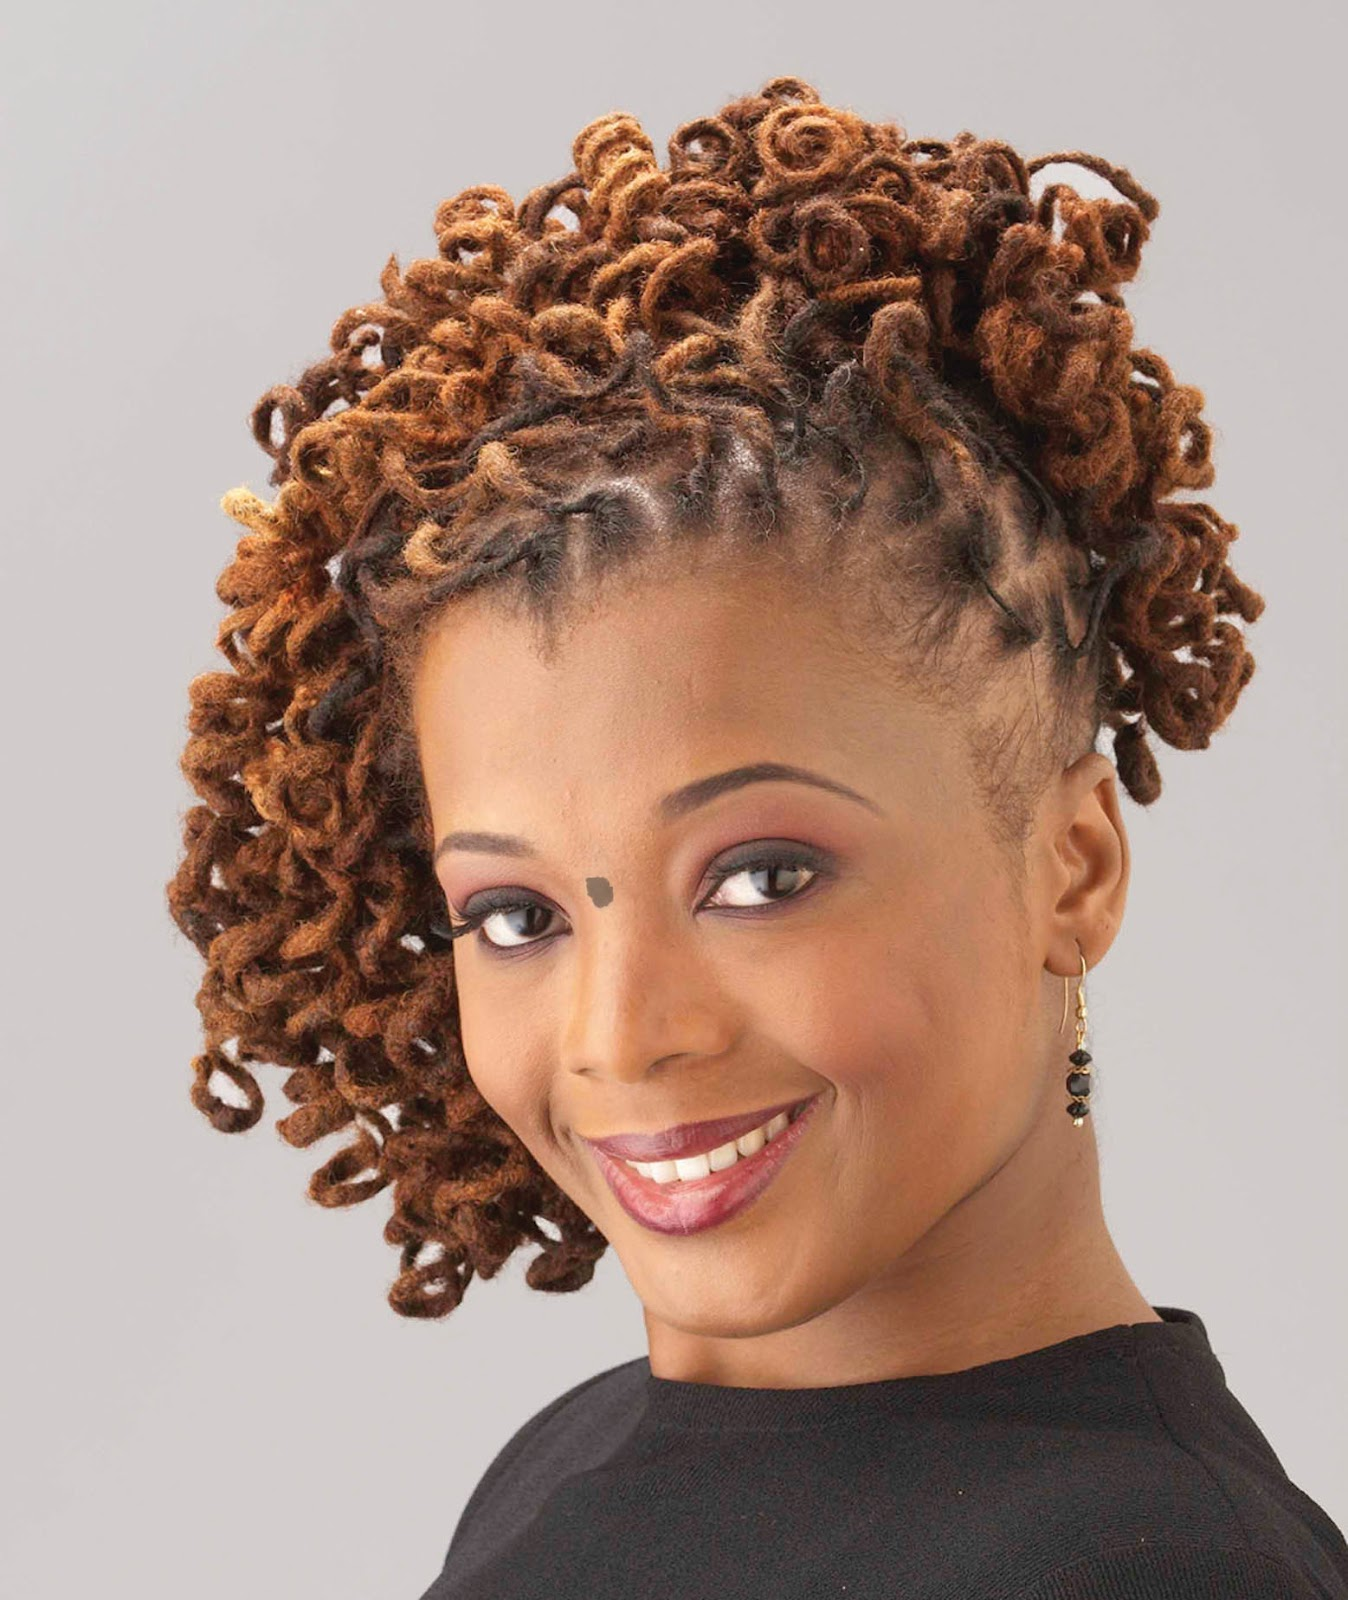 Peachy Wedding Hairstyles For Black Women That Will Turn Heads Short Hairstyles For Black Women Fulllsitofus